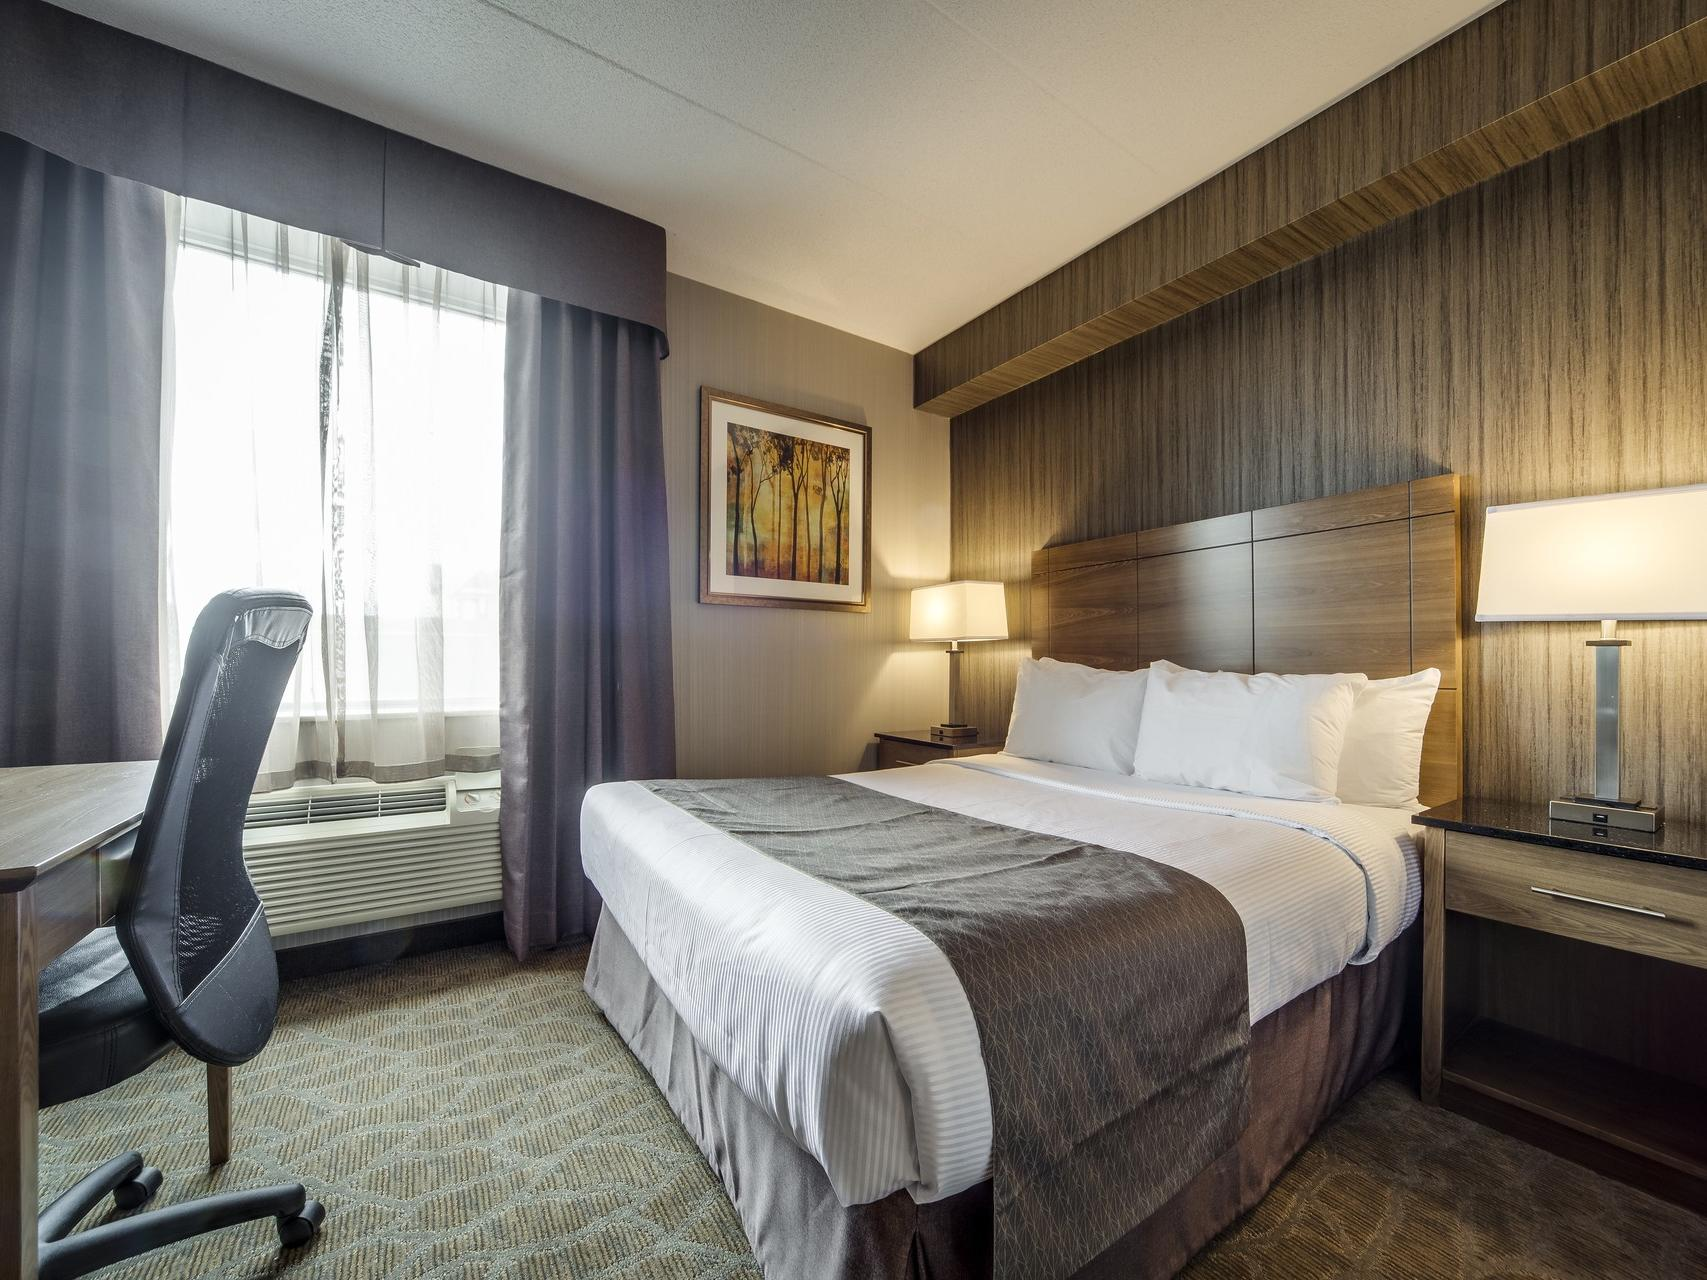 Double bed with working table and chair - Monte Carlo Inn Airport Suites